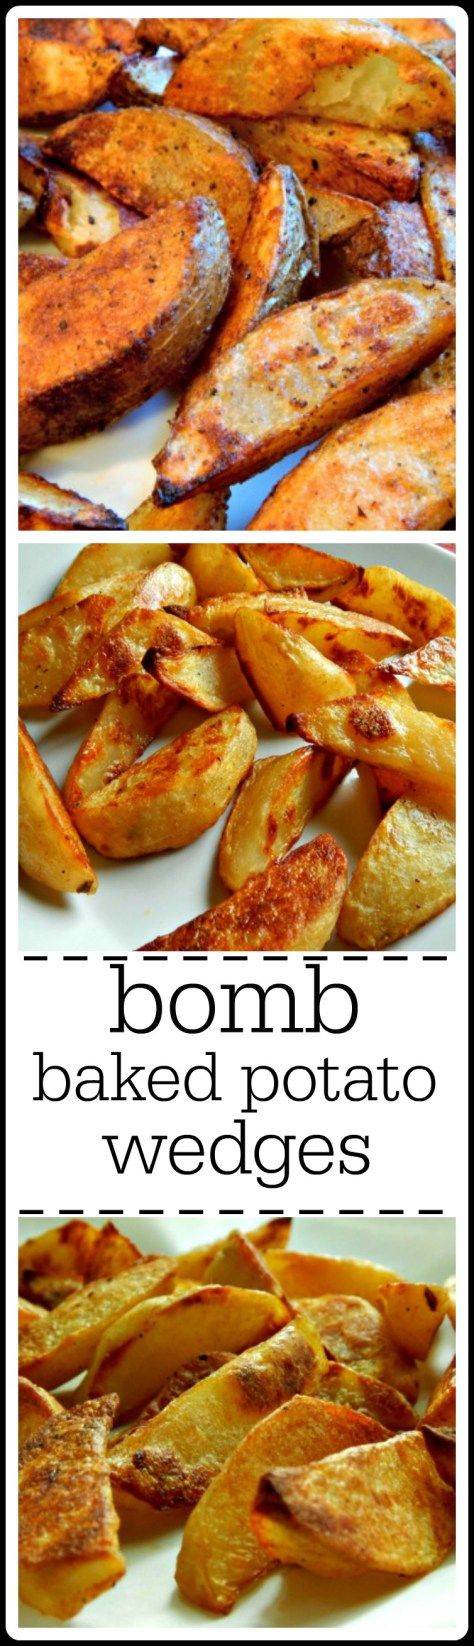 These are the BOMB!! A quick cook in the microwave b4 baking makes all the difference.